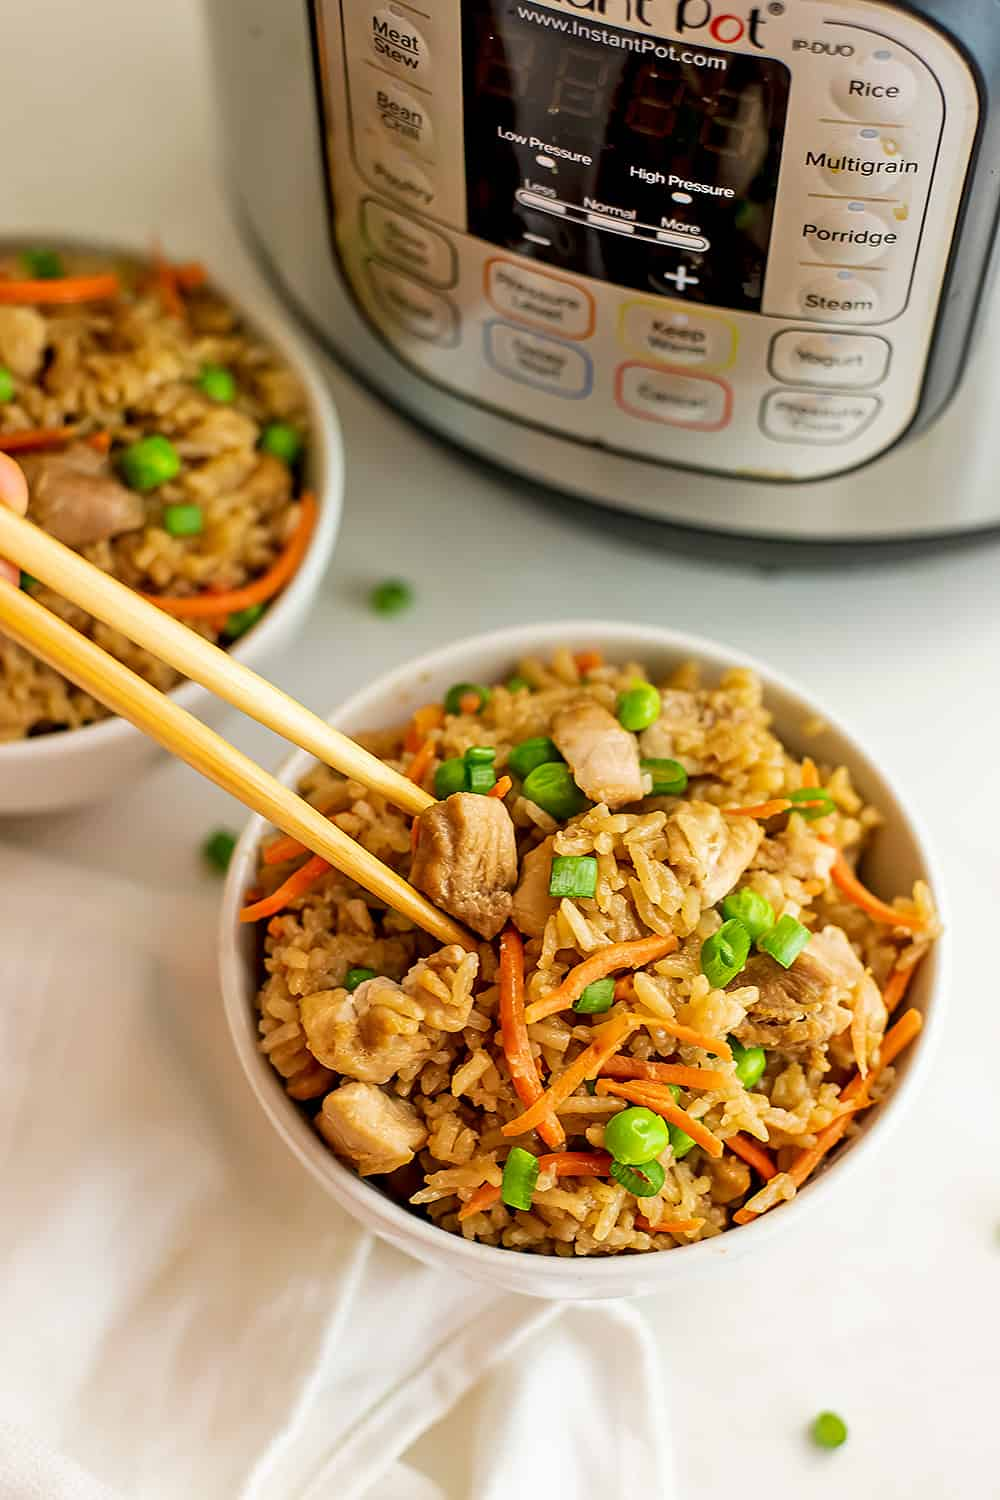 Chopsticks getting a serving of chicken fried rice in front of instant pot.